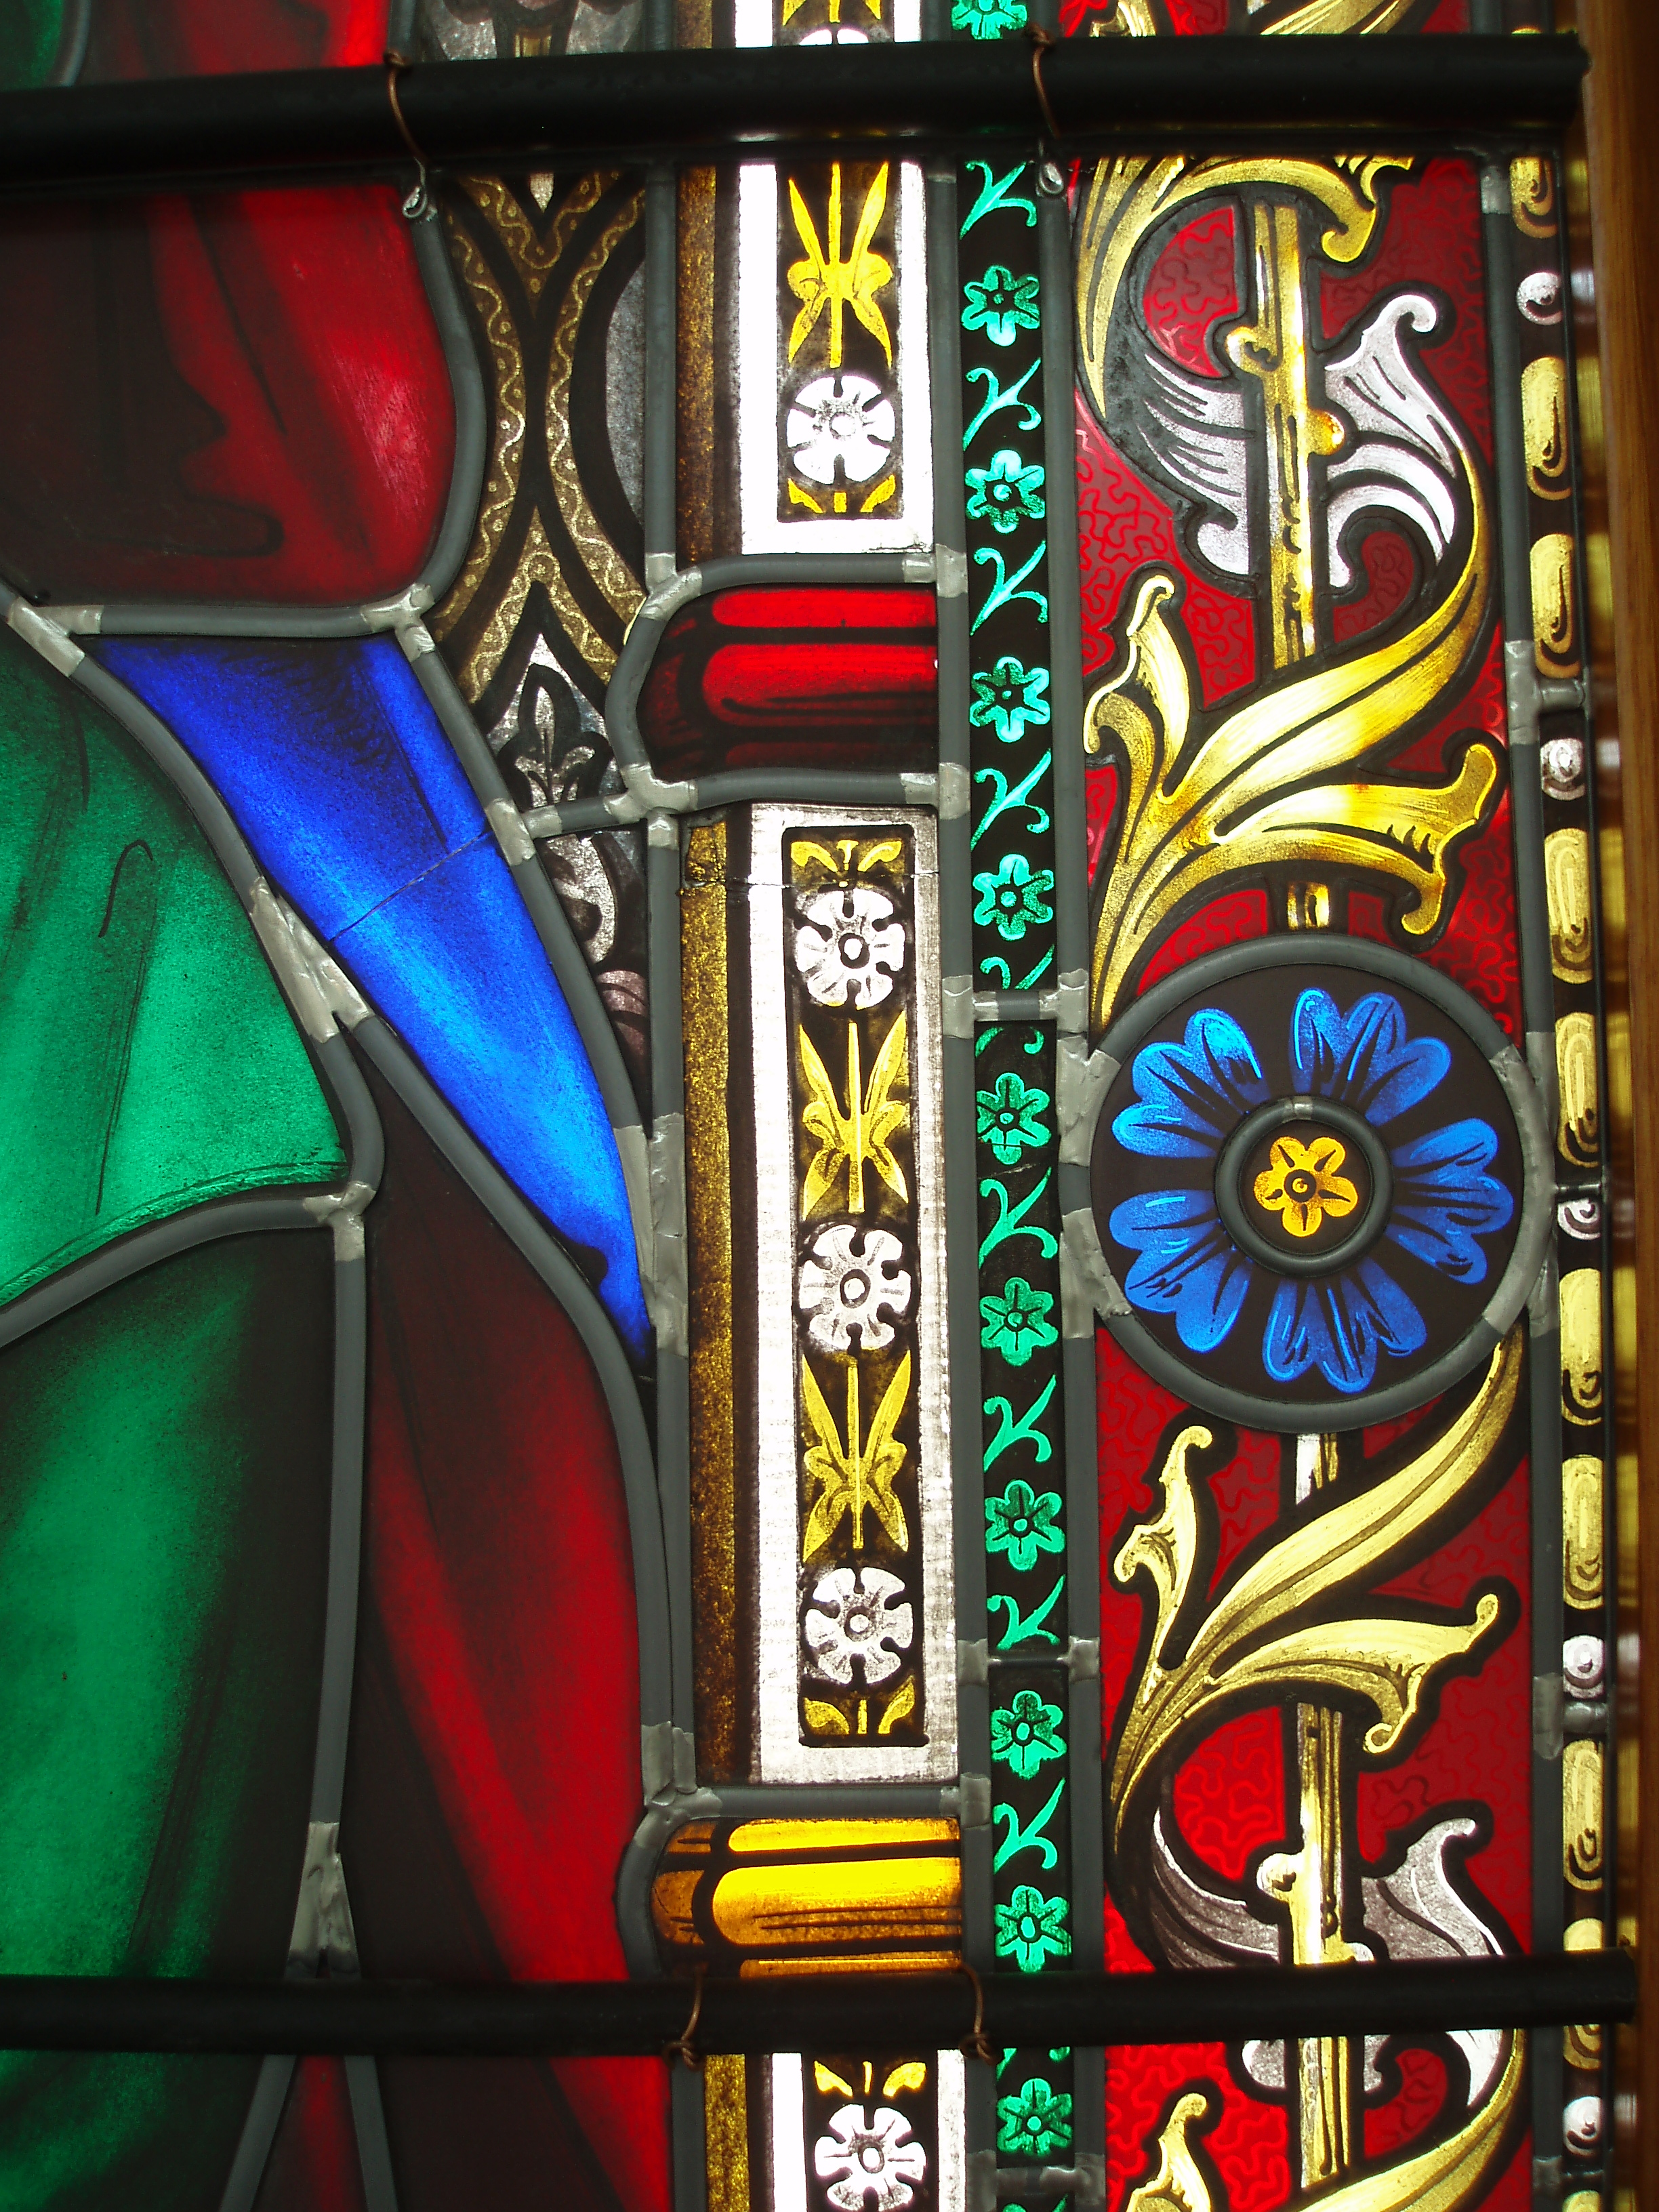 close up image of a stained glass window